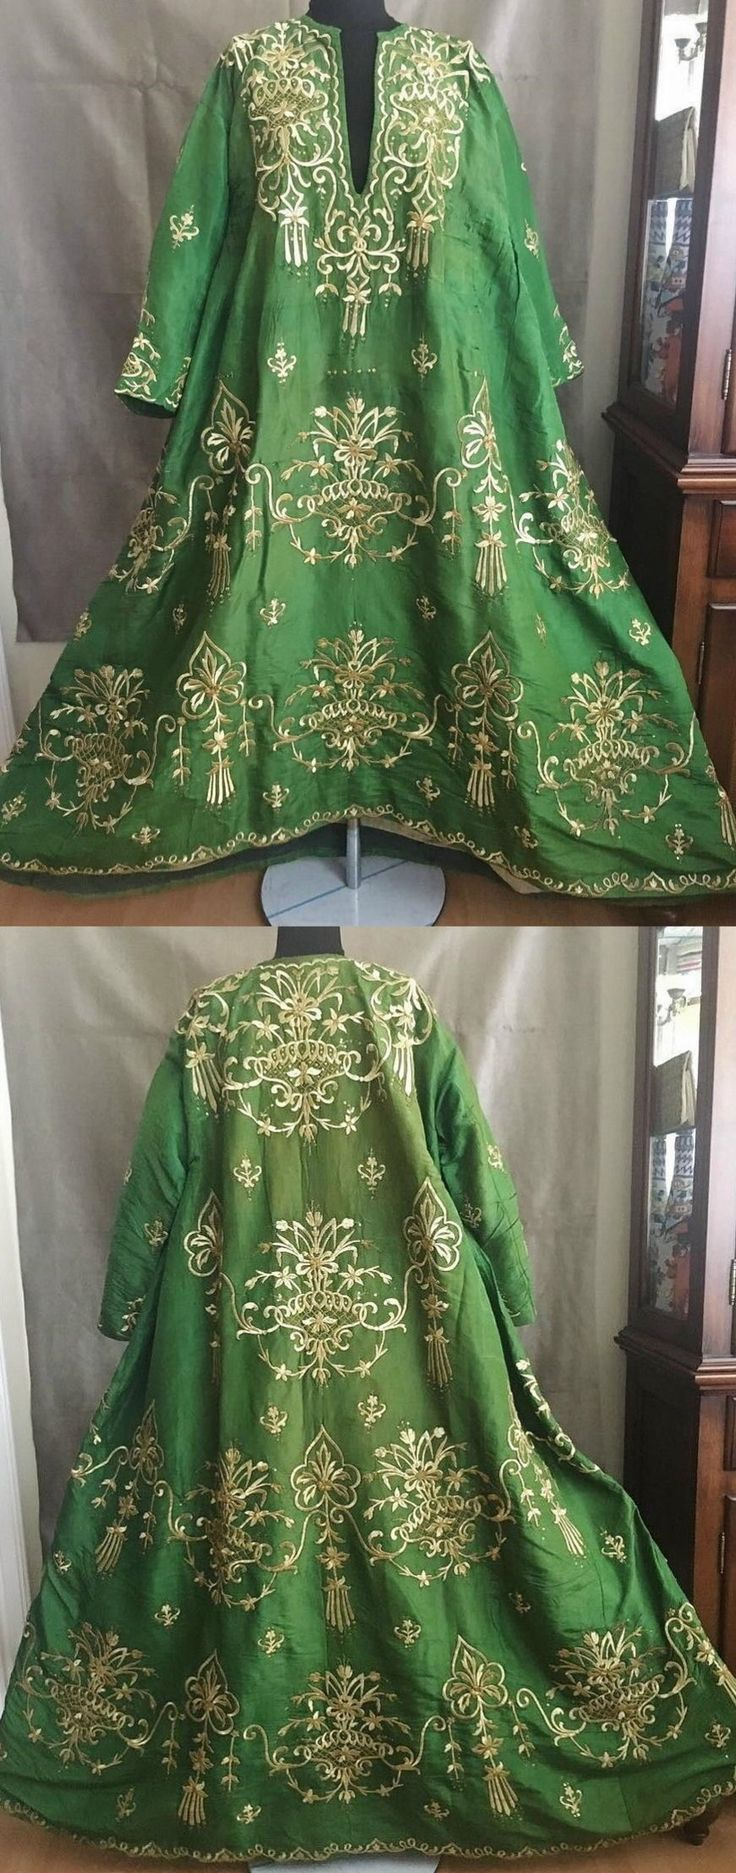 """19th century late-Ottoman women's bridal dress """" bindallı """". Hand loomed silk fabric exquisitely hand embroidered with golden metallic thread (dival work)."""